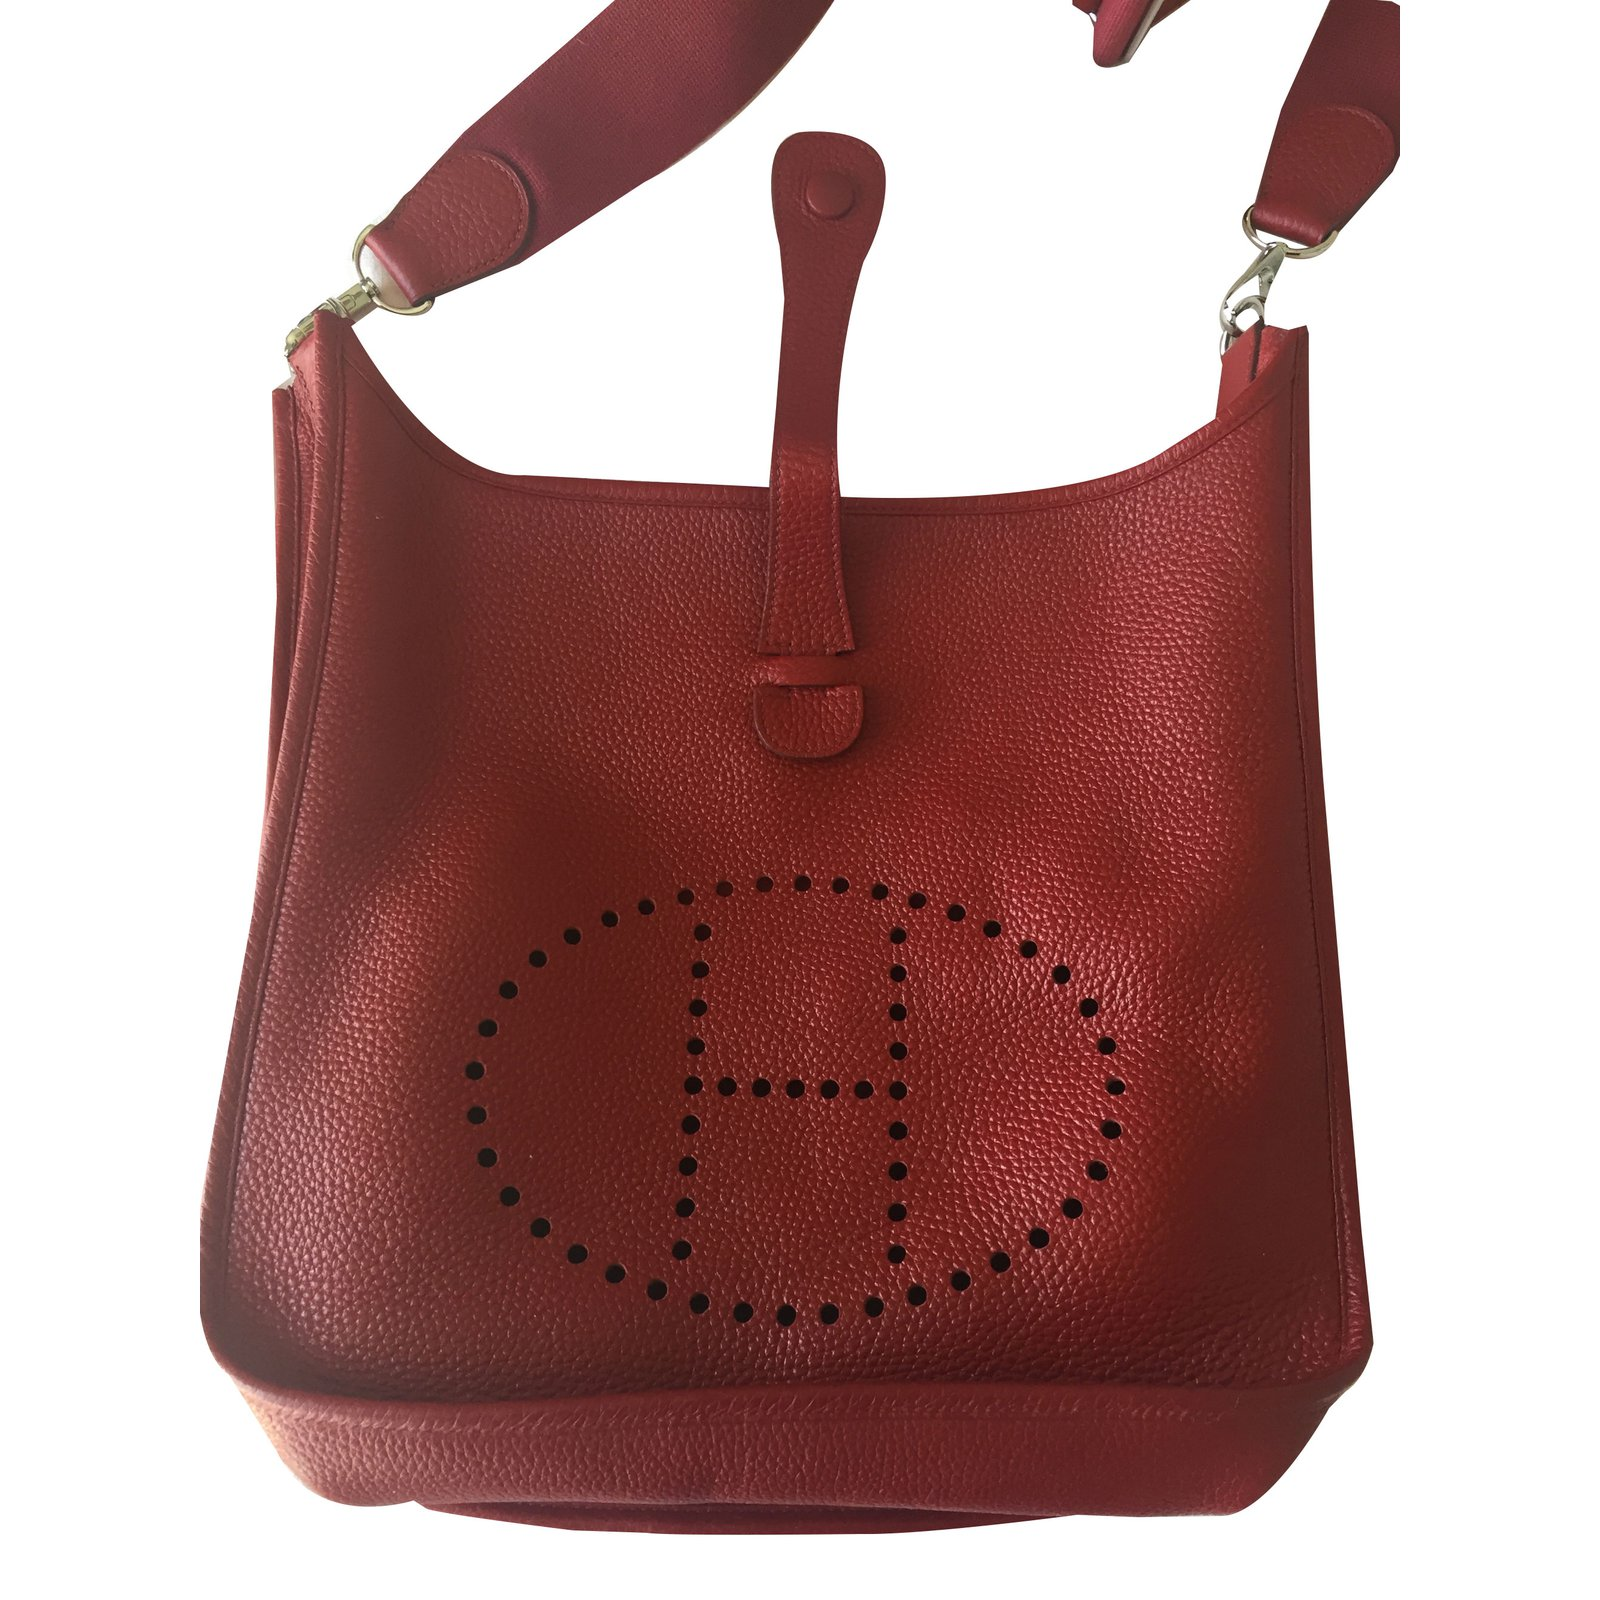 ffddfa0472b9 Facebook · Pin This. Hermès Evelyne III 33 GM Handbags Leather Red ...